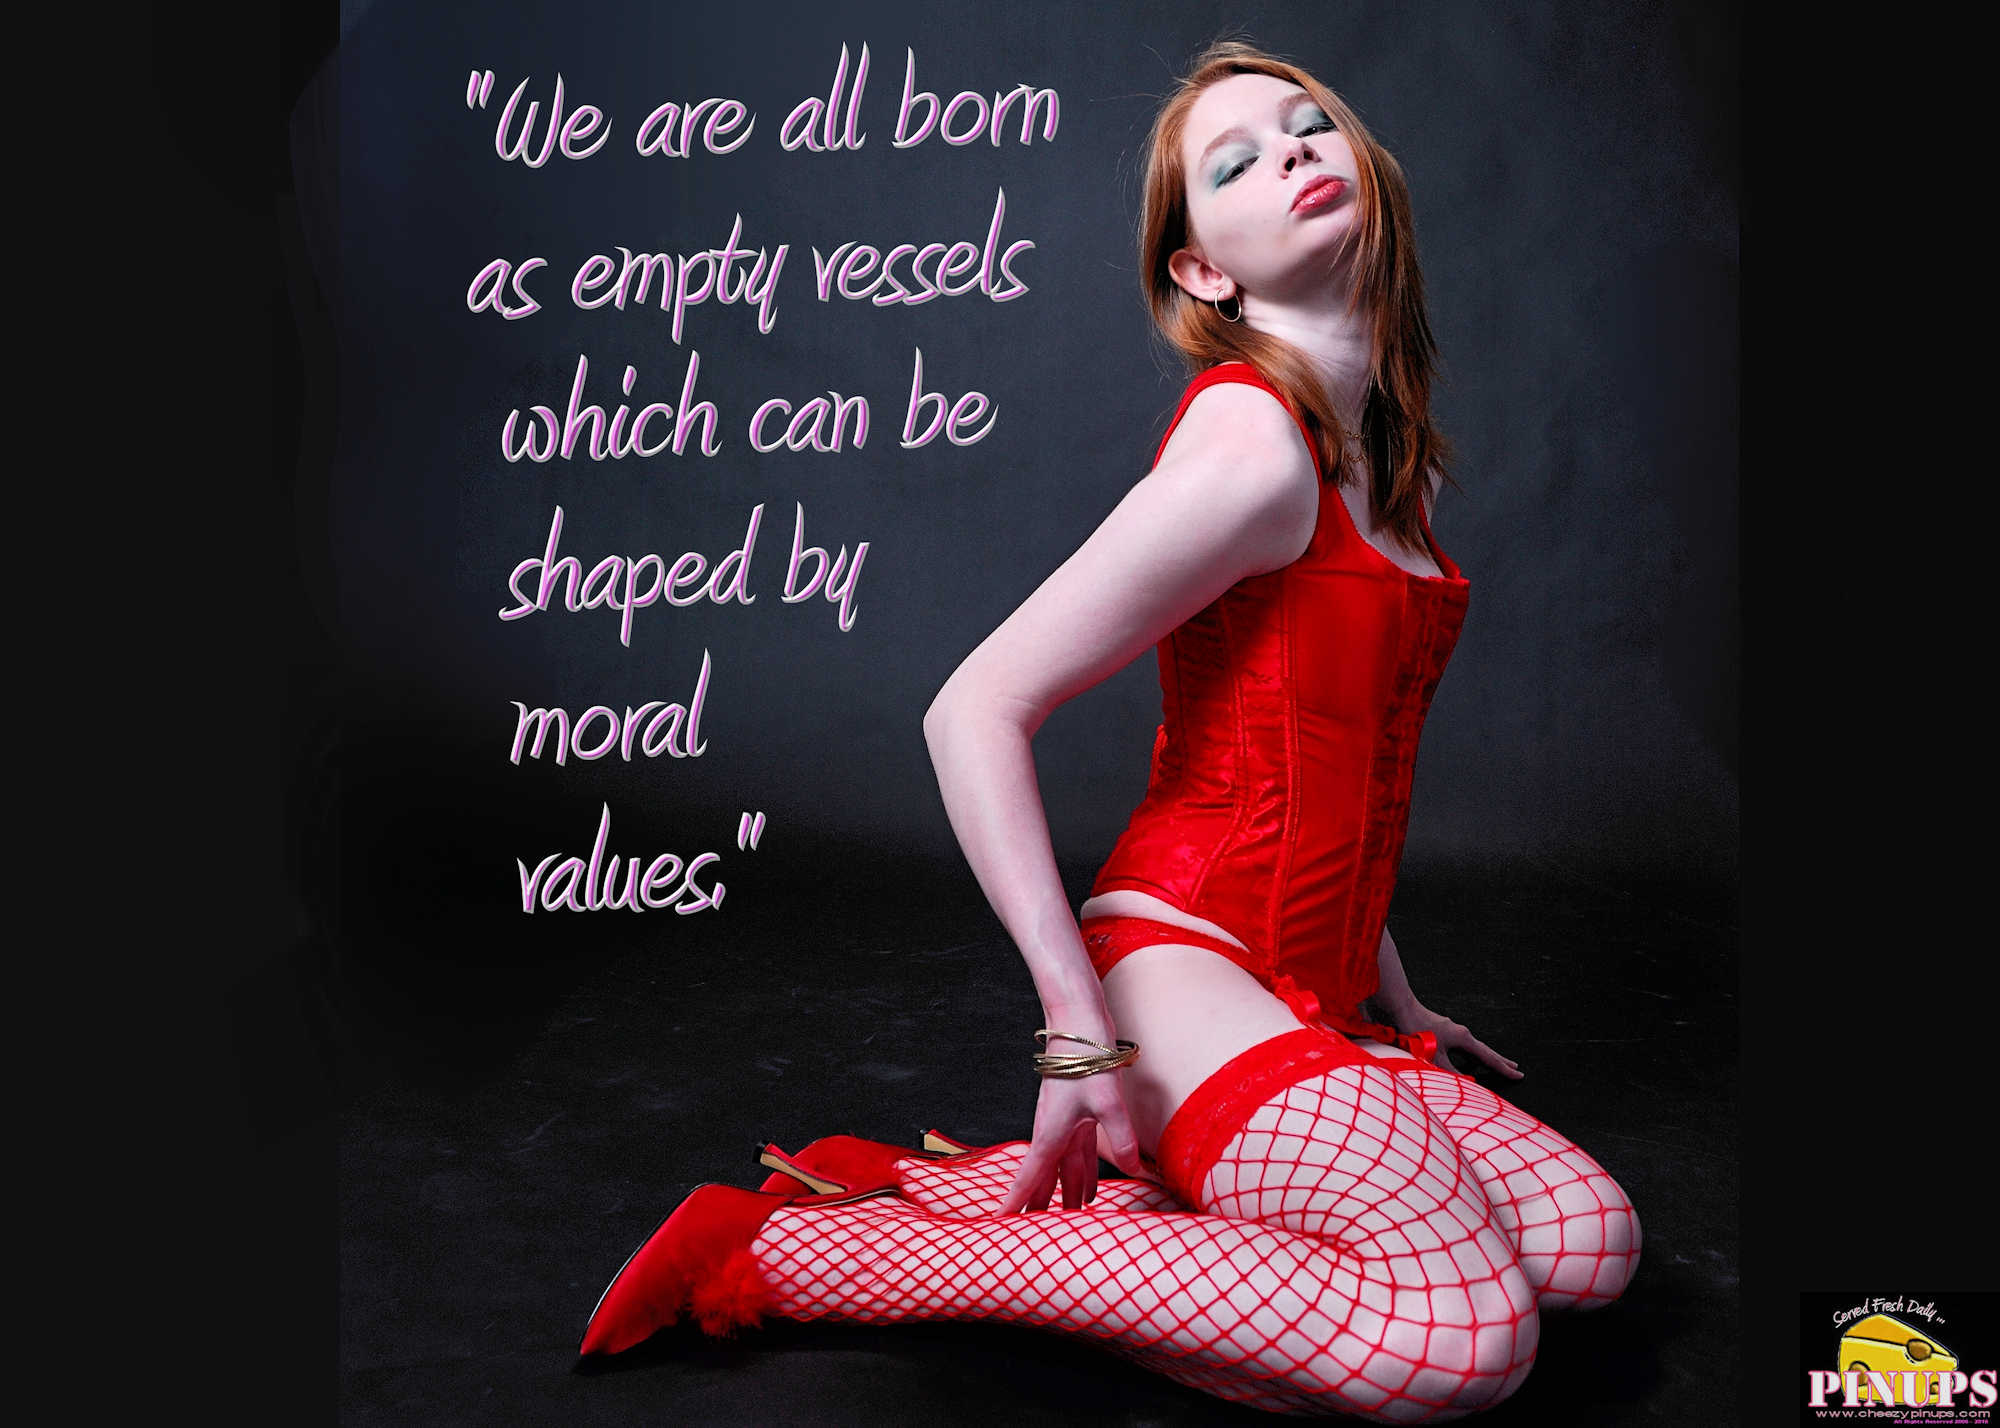 "Cheezy Pinup - February 13, 2018 ""We are all born as empty vessels which can be shaped by moral values."" - Jerry Springer Model: Redde"